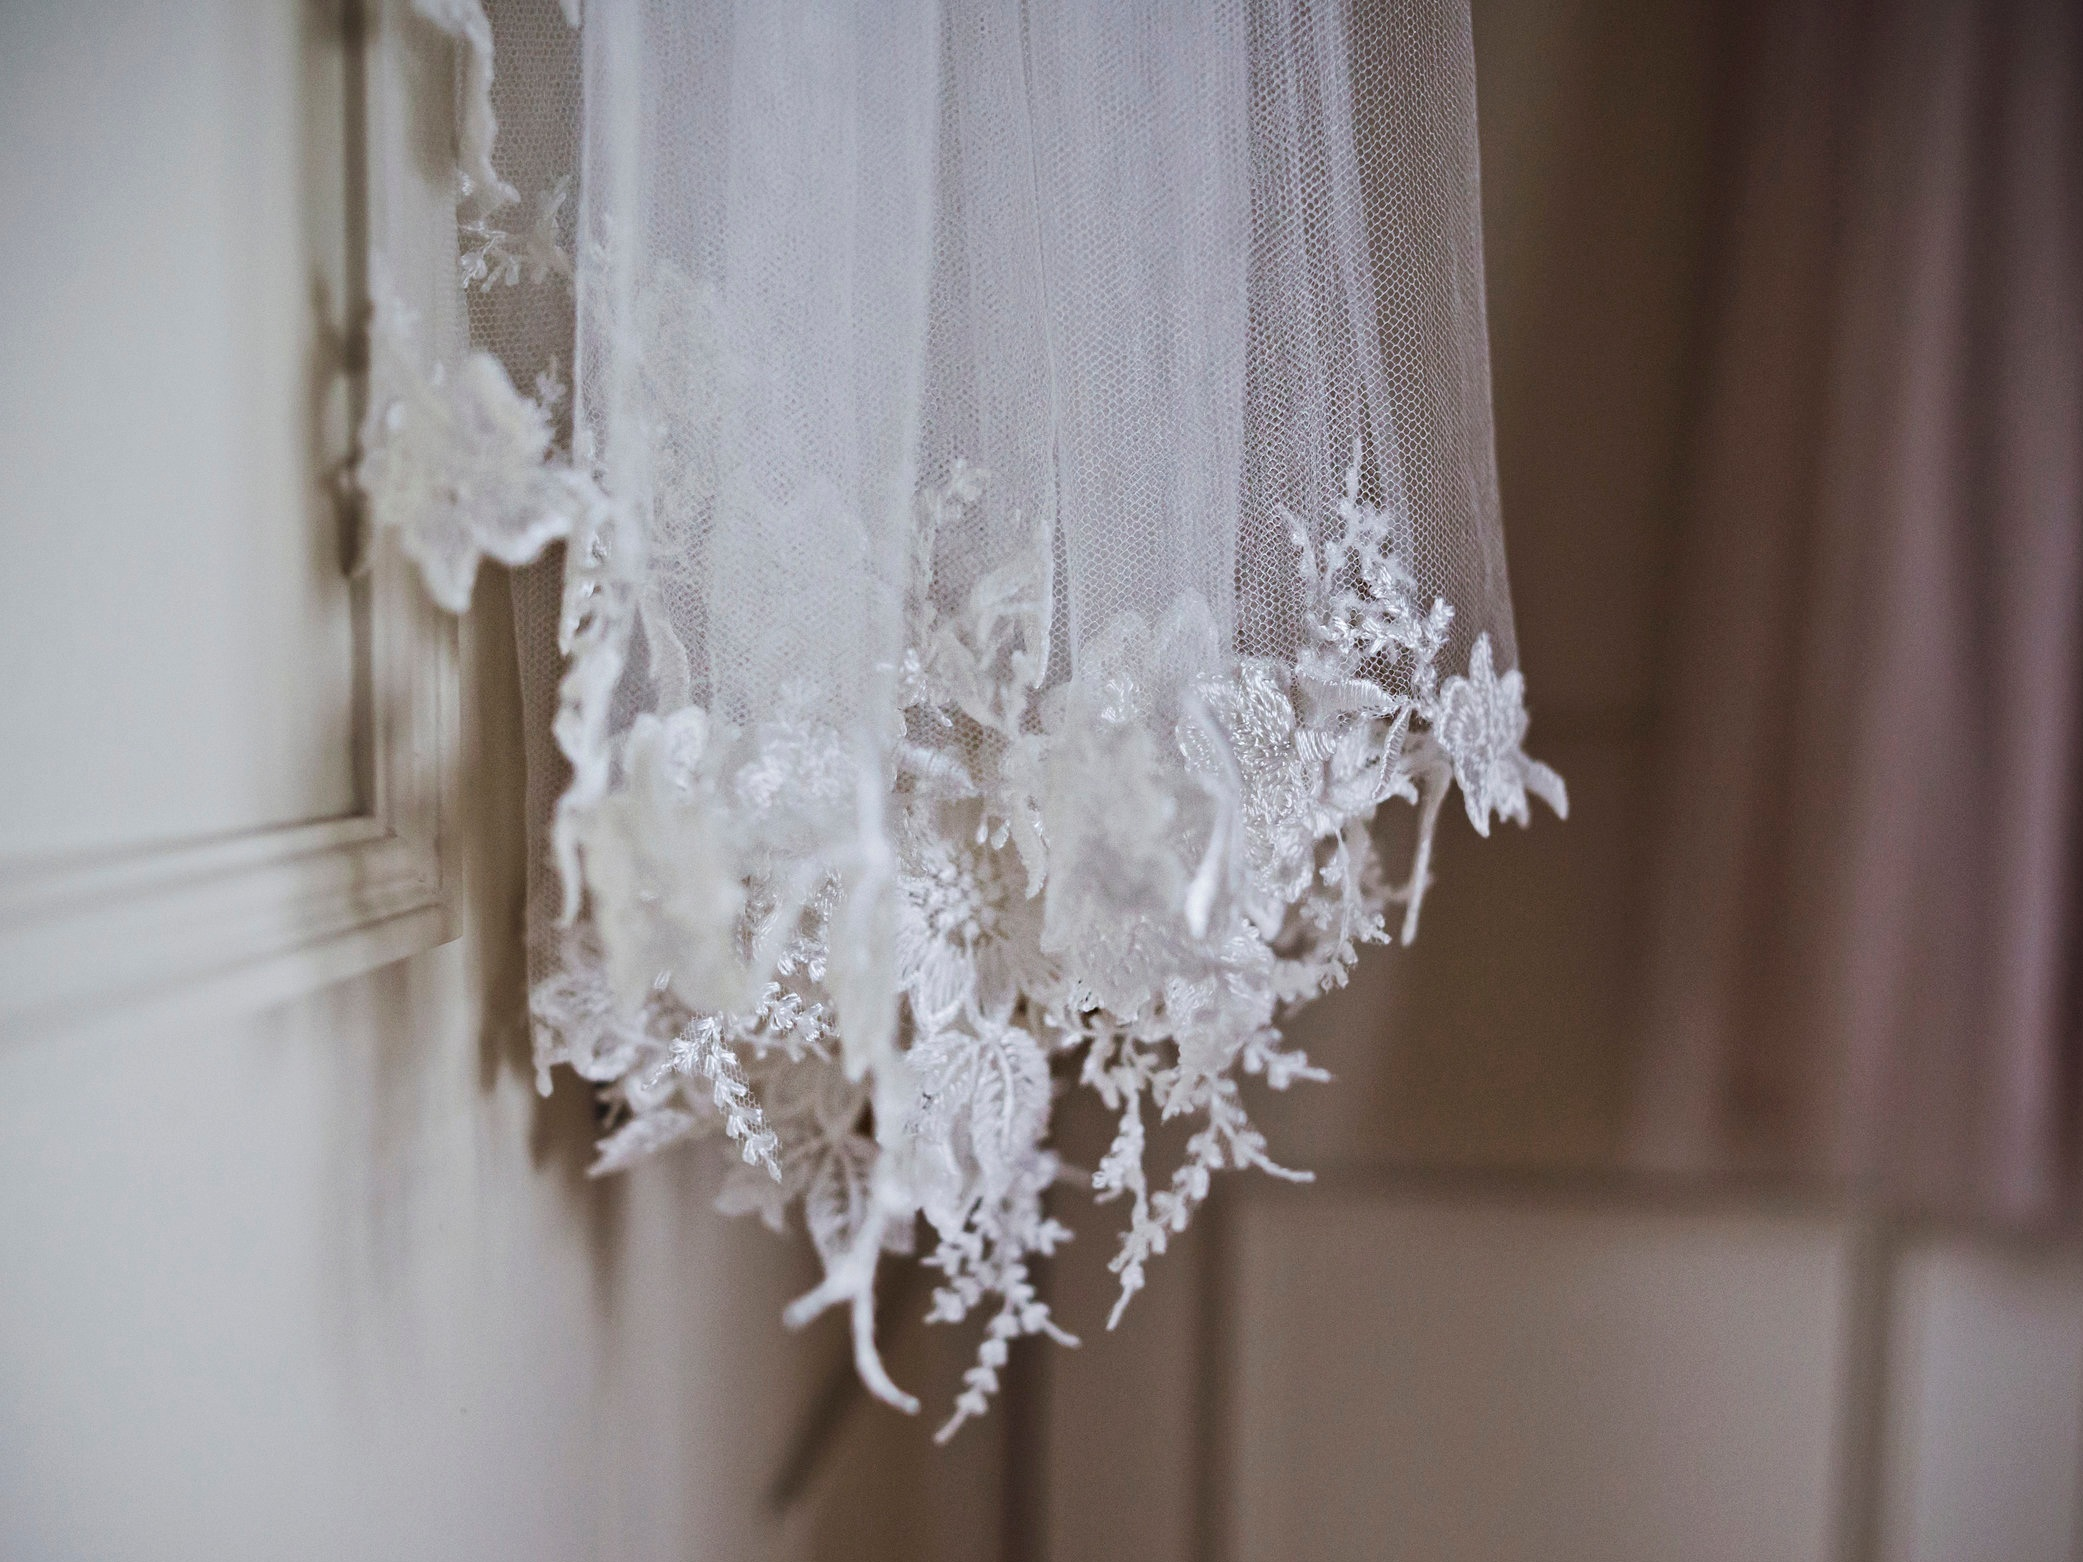 Bespoke pure silk tulle and floral wedding veil, Truro, Cornwall, UK